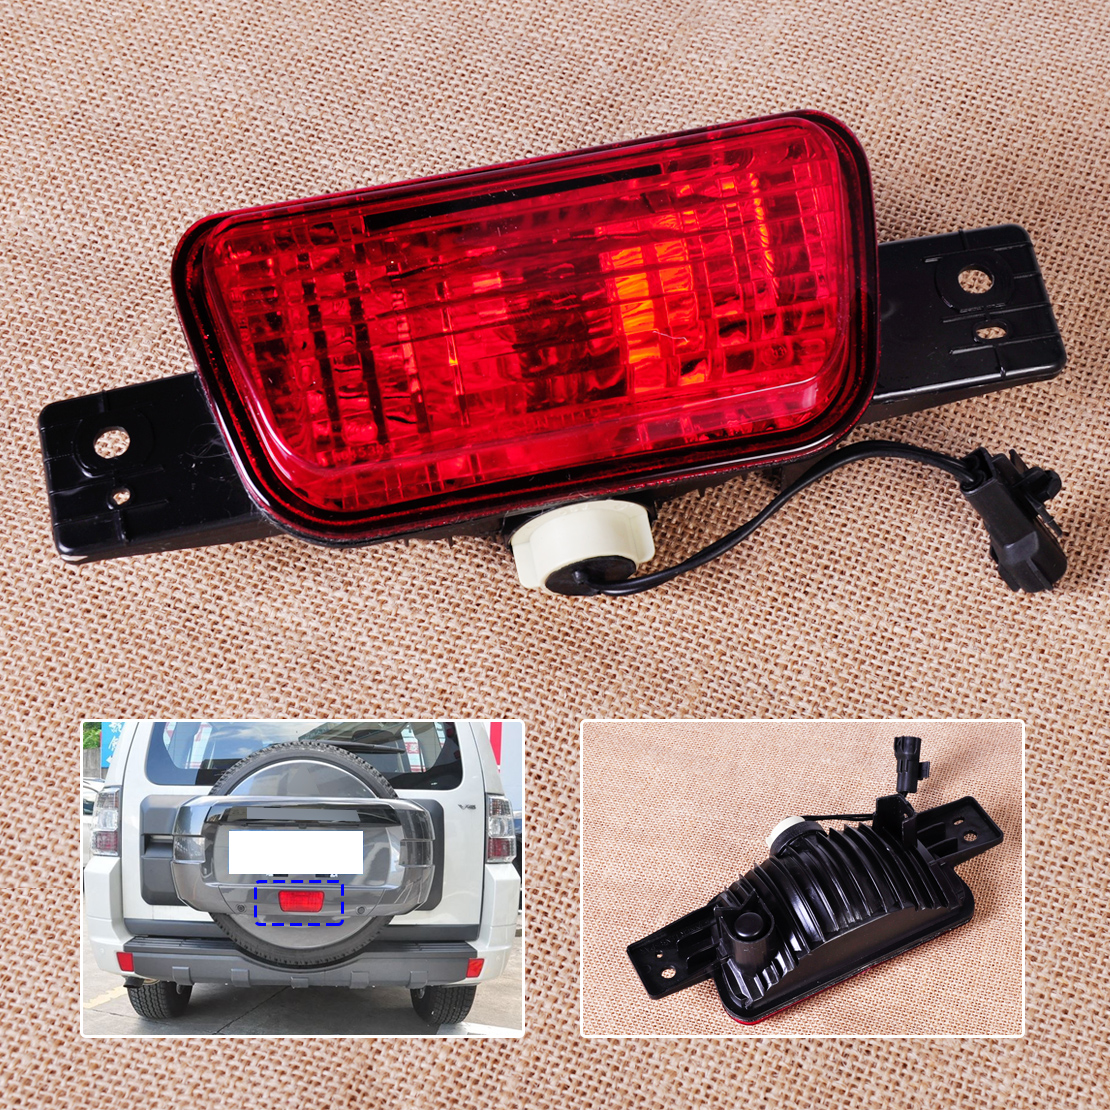 CITALL Rear Spare Tire Cover Tail Bumper Light Fog Lamp for Mitsubishi Pajero Shogun 2007 - 2009 2010 2011 2012 2013 2014 2015 runmade for 2010 vw transporter t6 t5 before facelift lower bumper grill fog cover fog light lamp set left